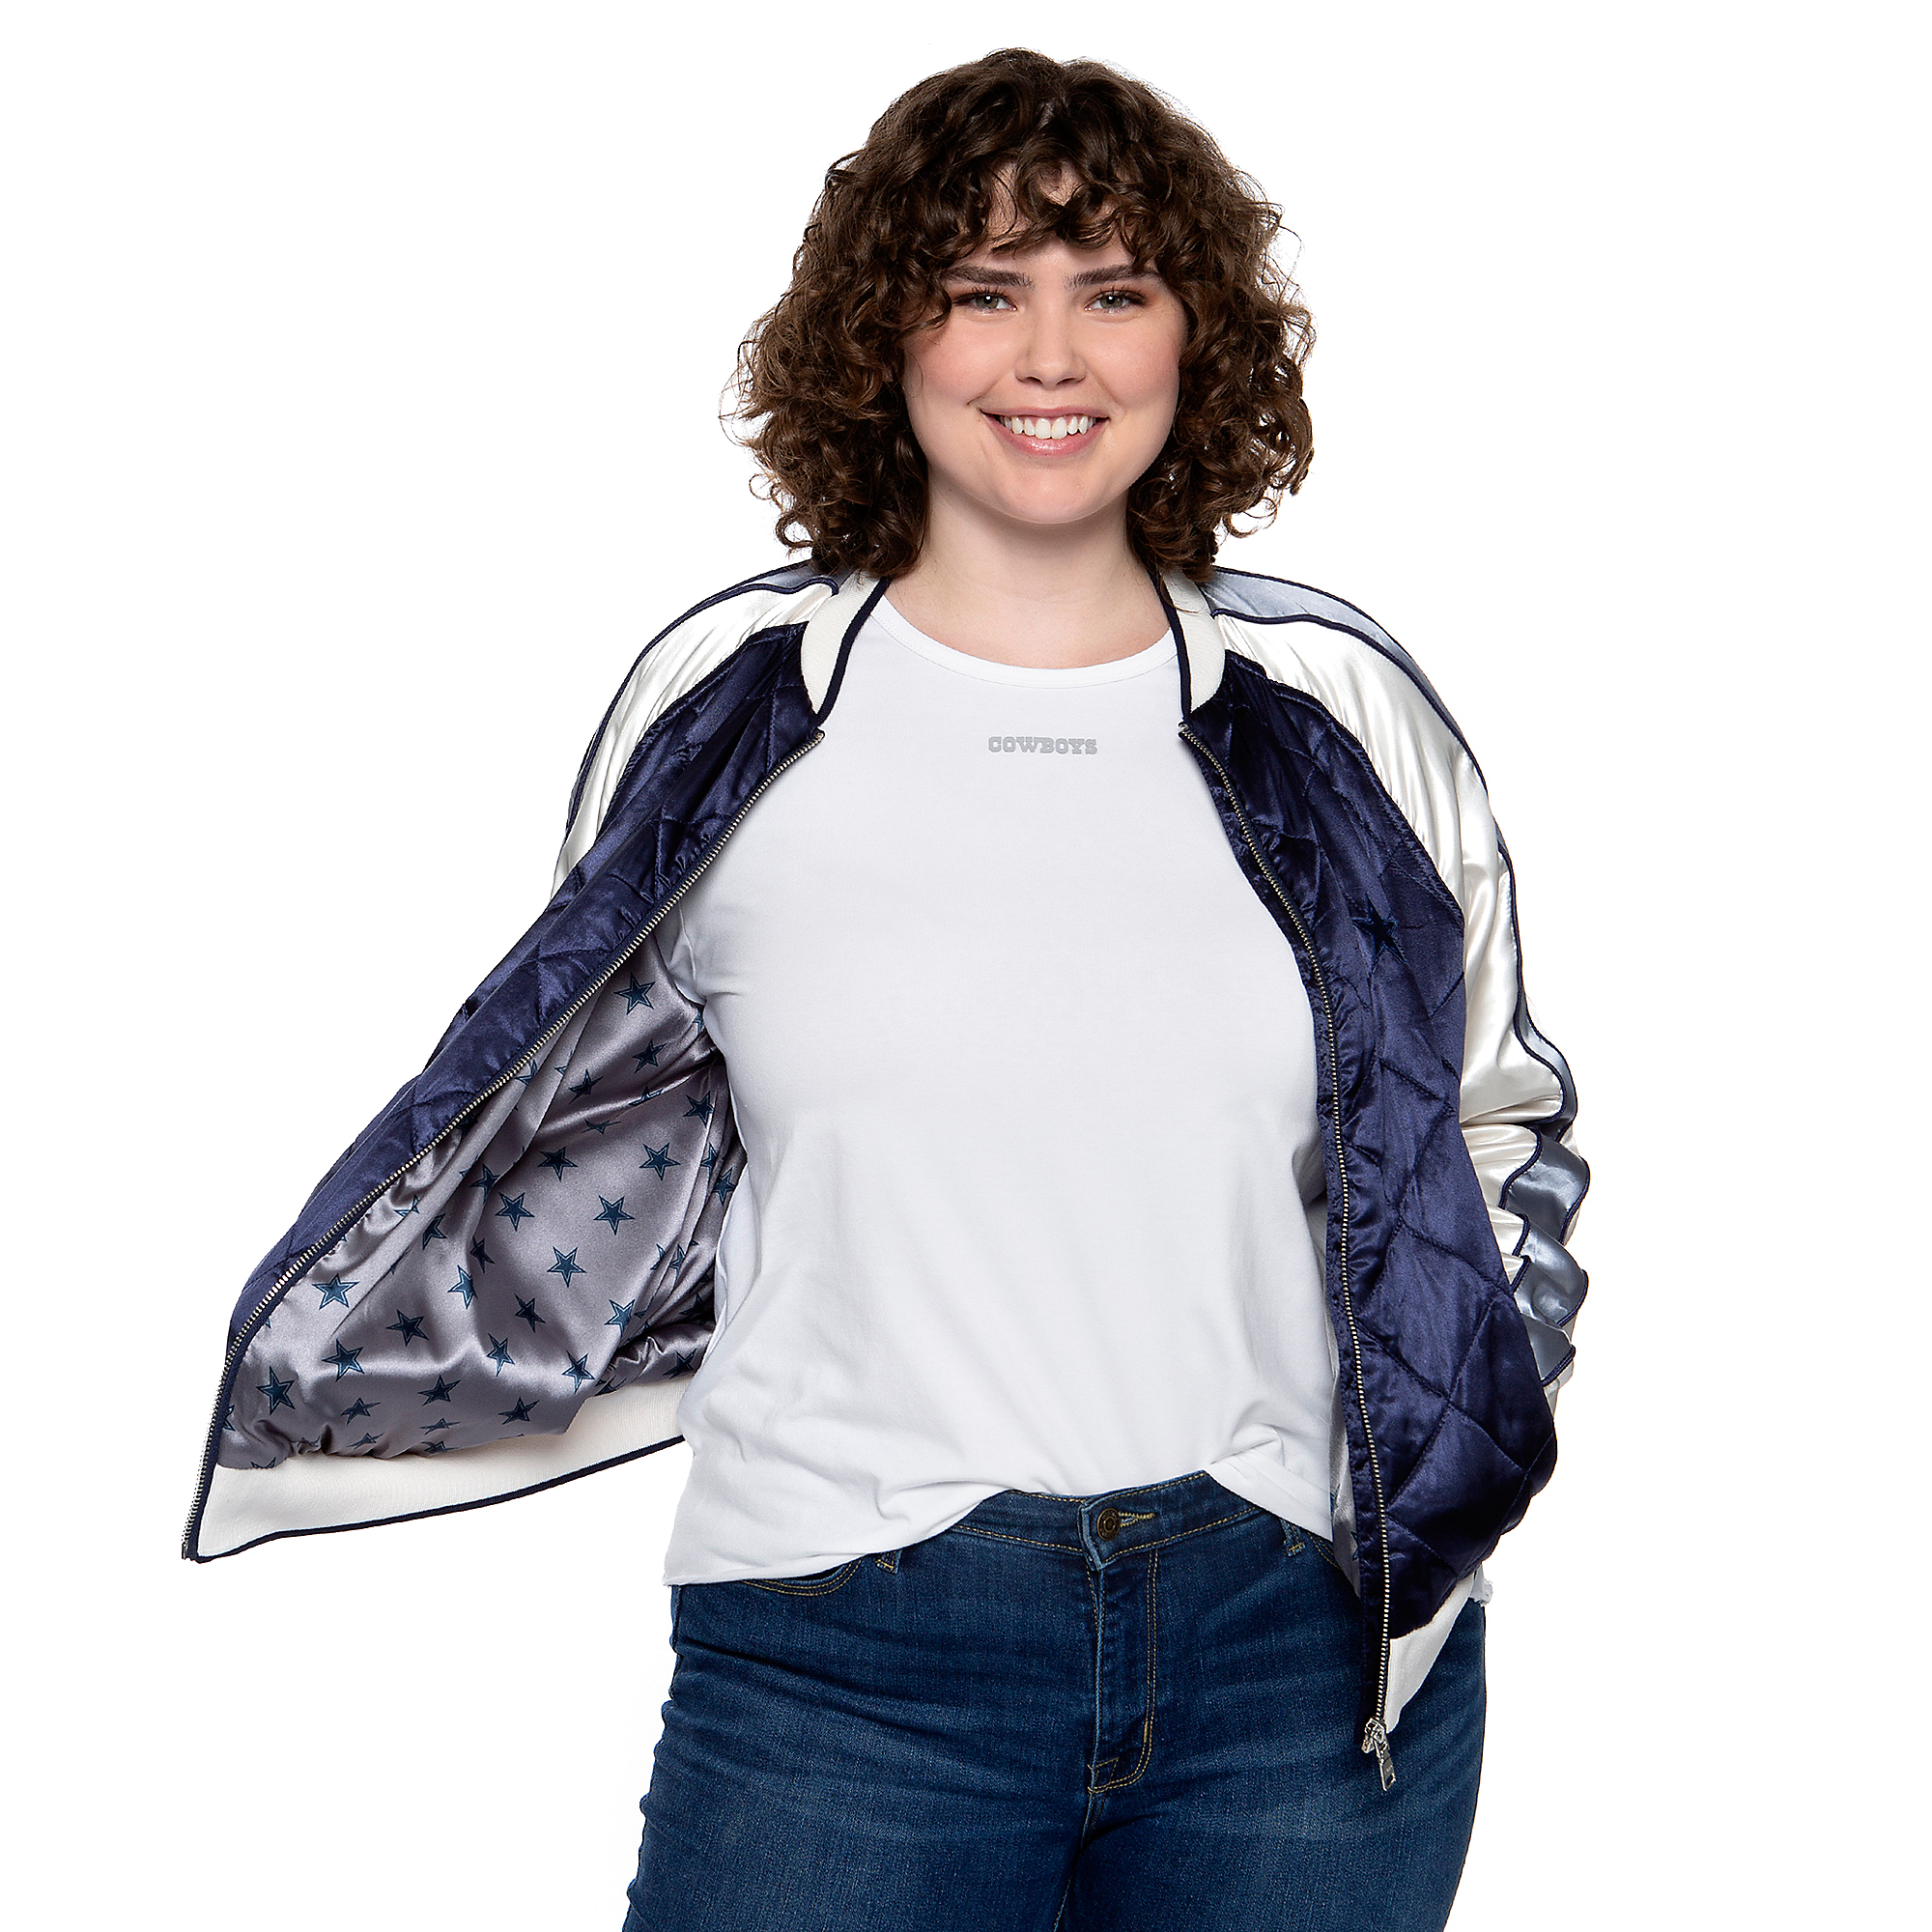 Dallas Cowboys WEAR By Erin Andrews Womens Color Block Quilted Bomber Jacket